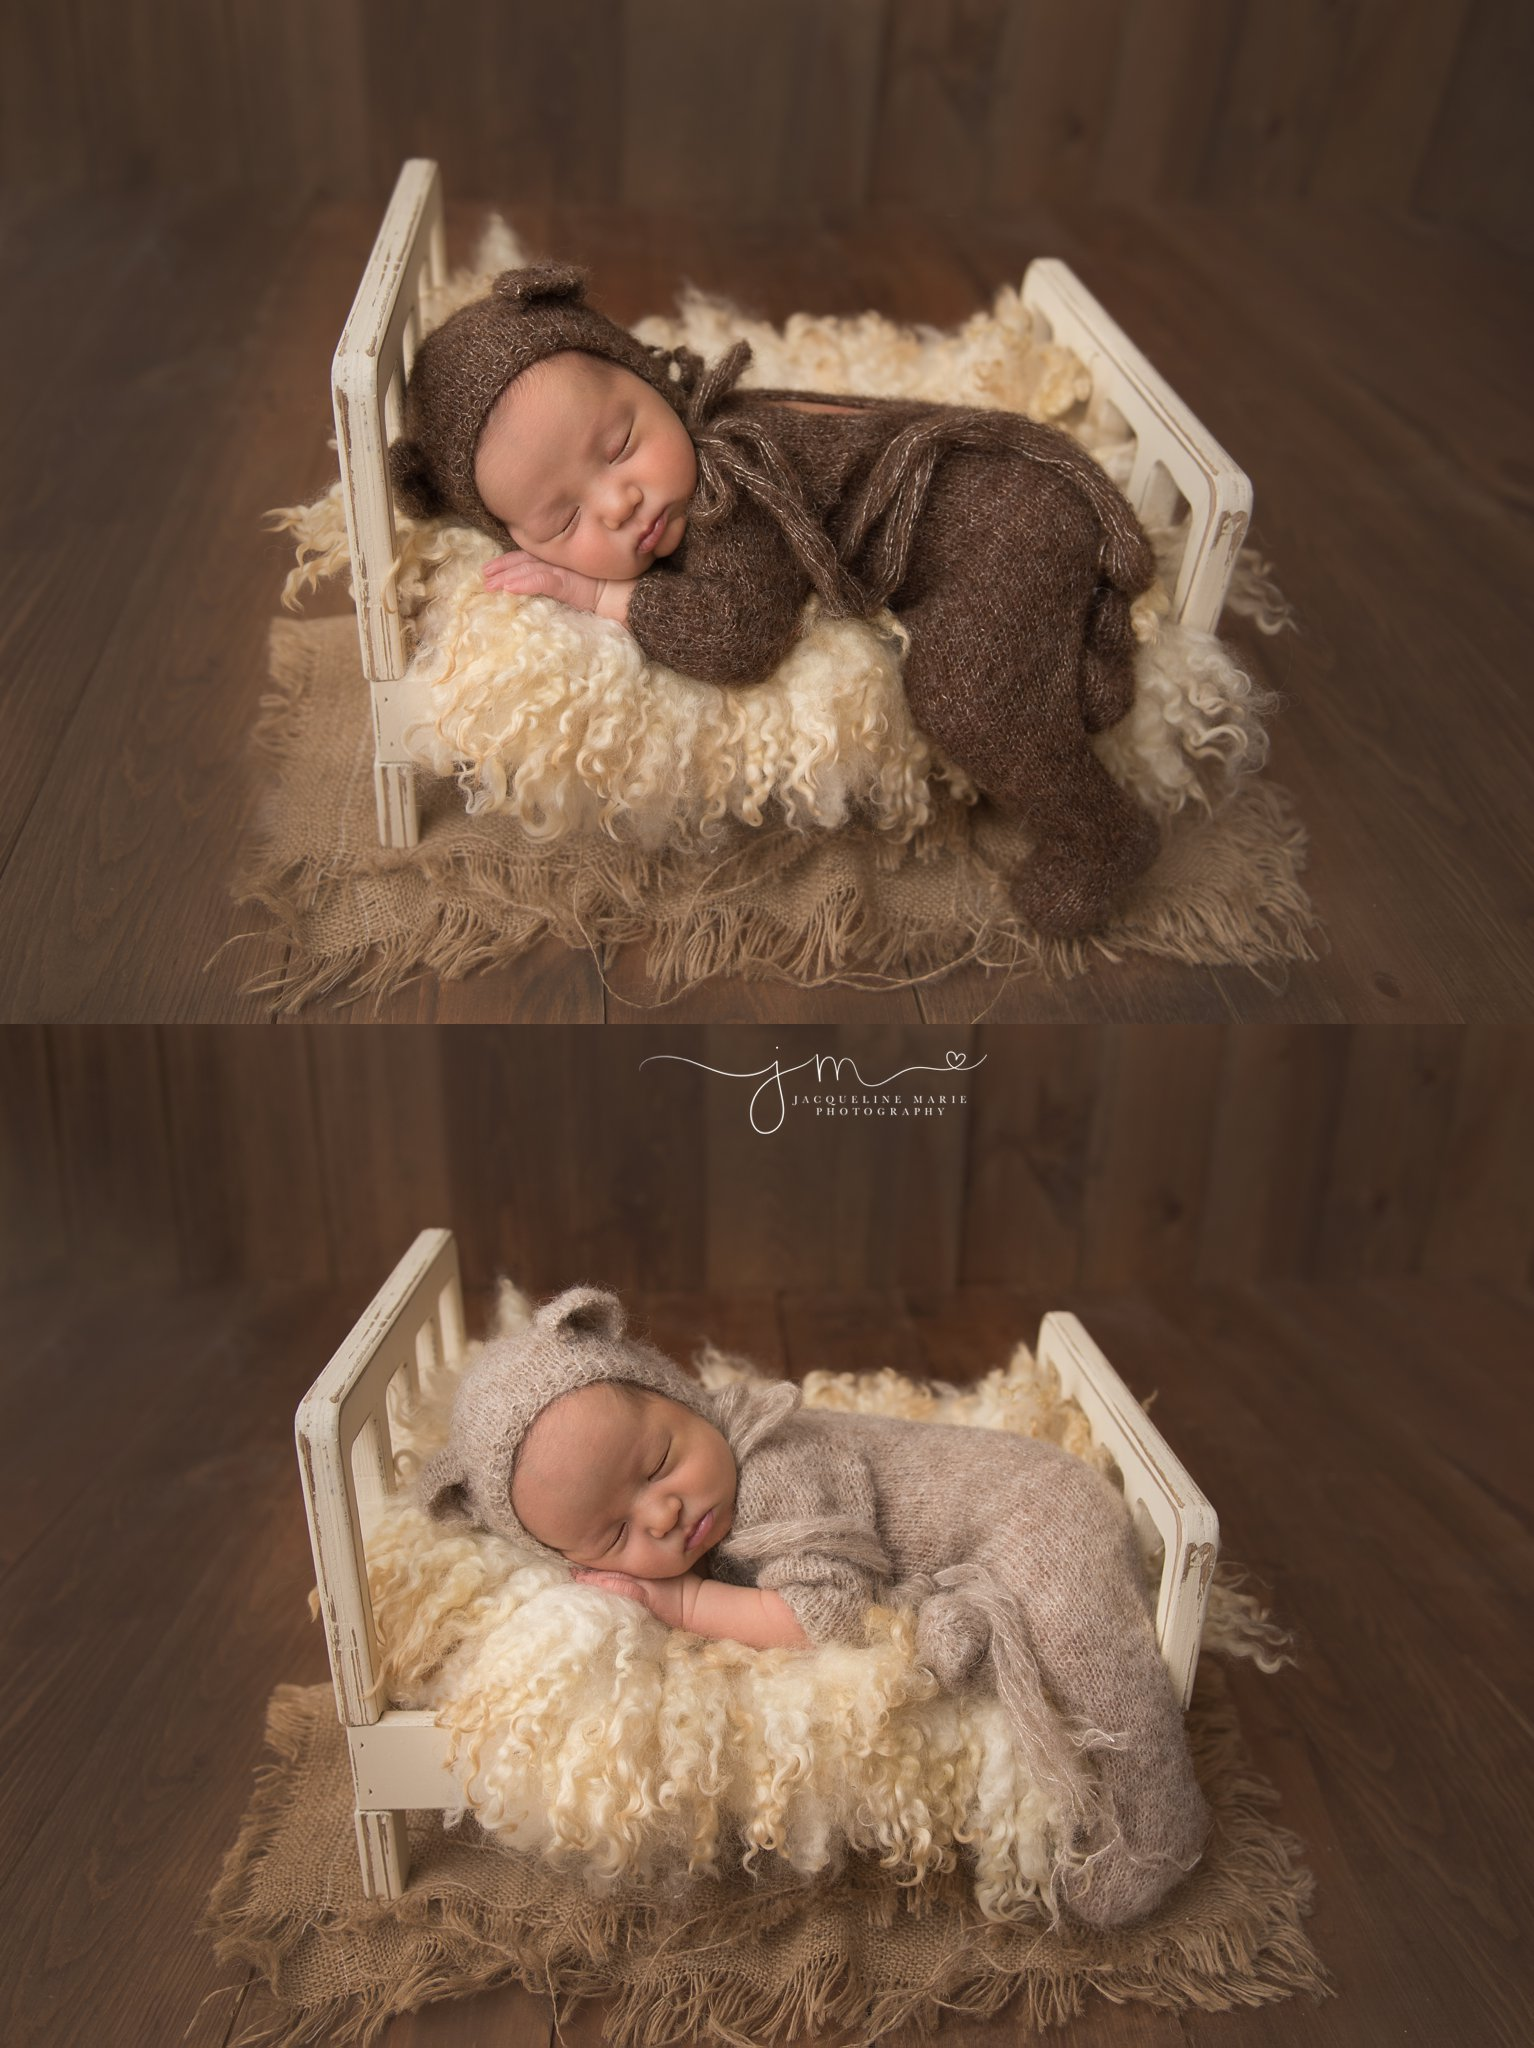 newborn photographer in columbus ohio features image of newborn baby wearing romper with matching teddy bear bonnet